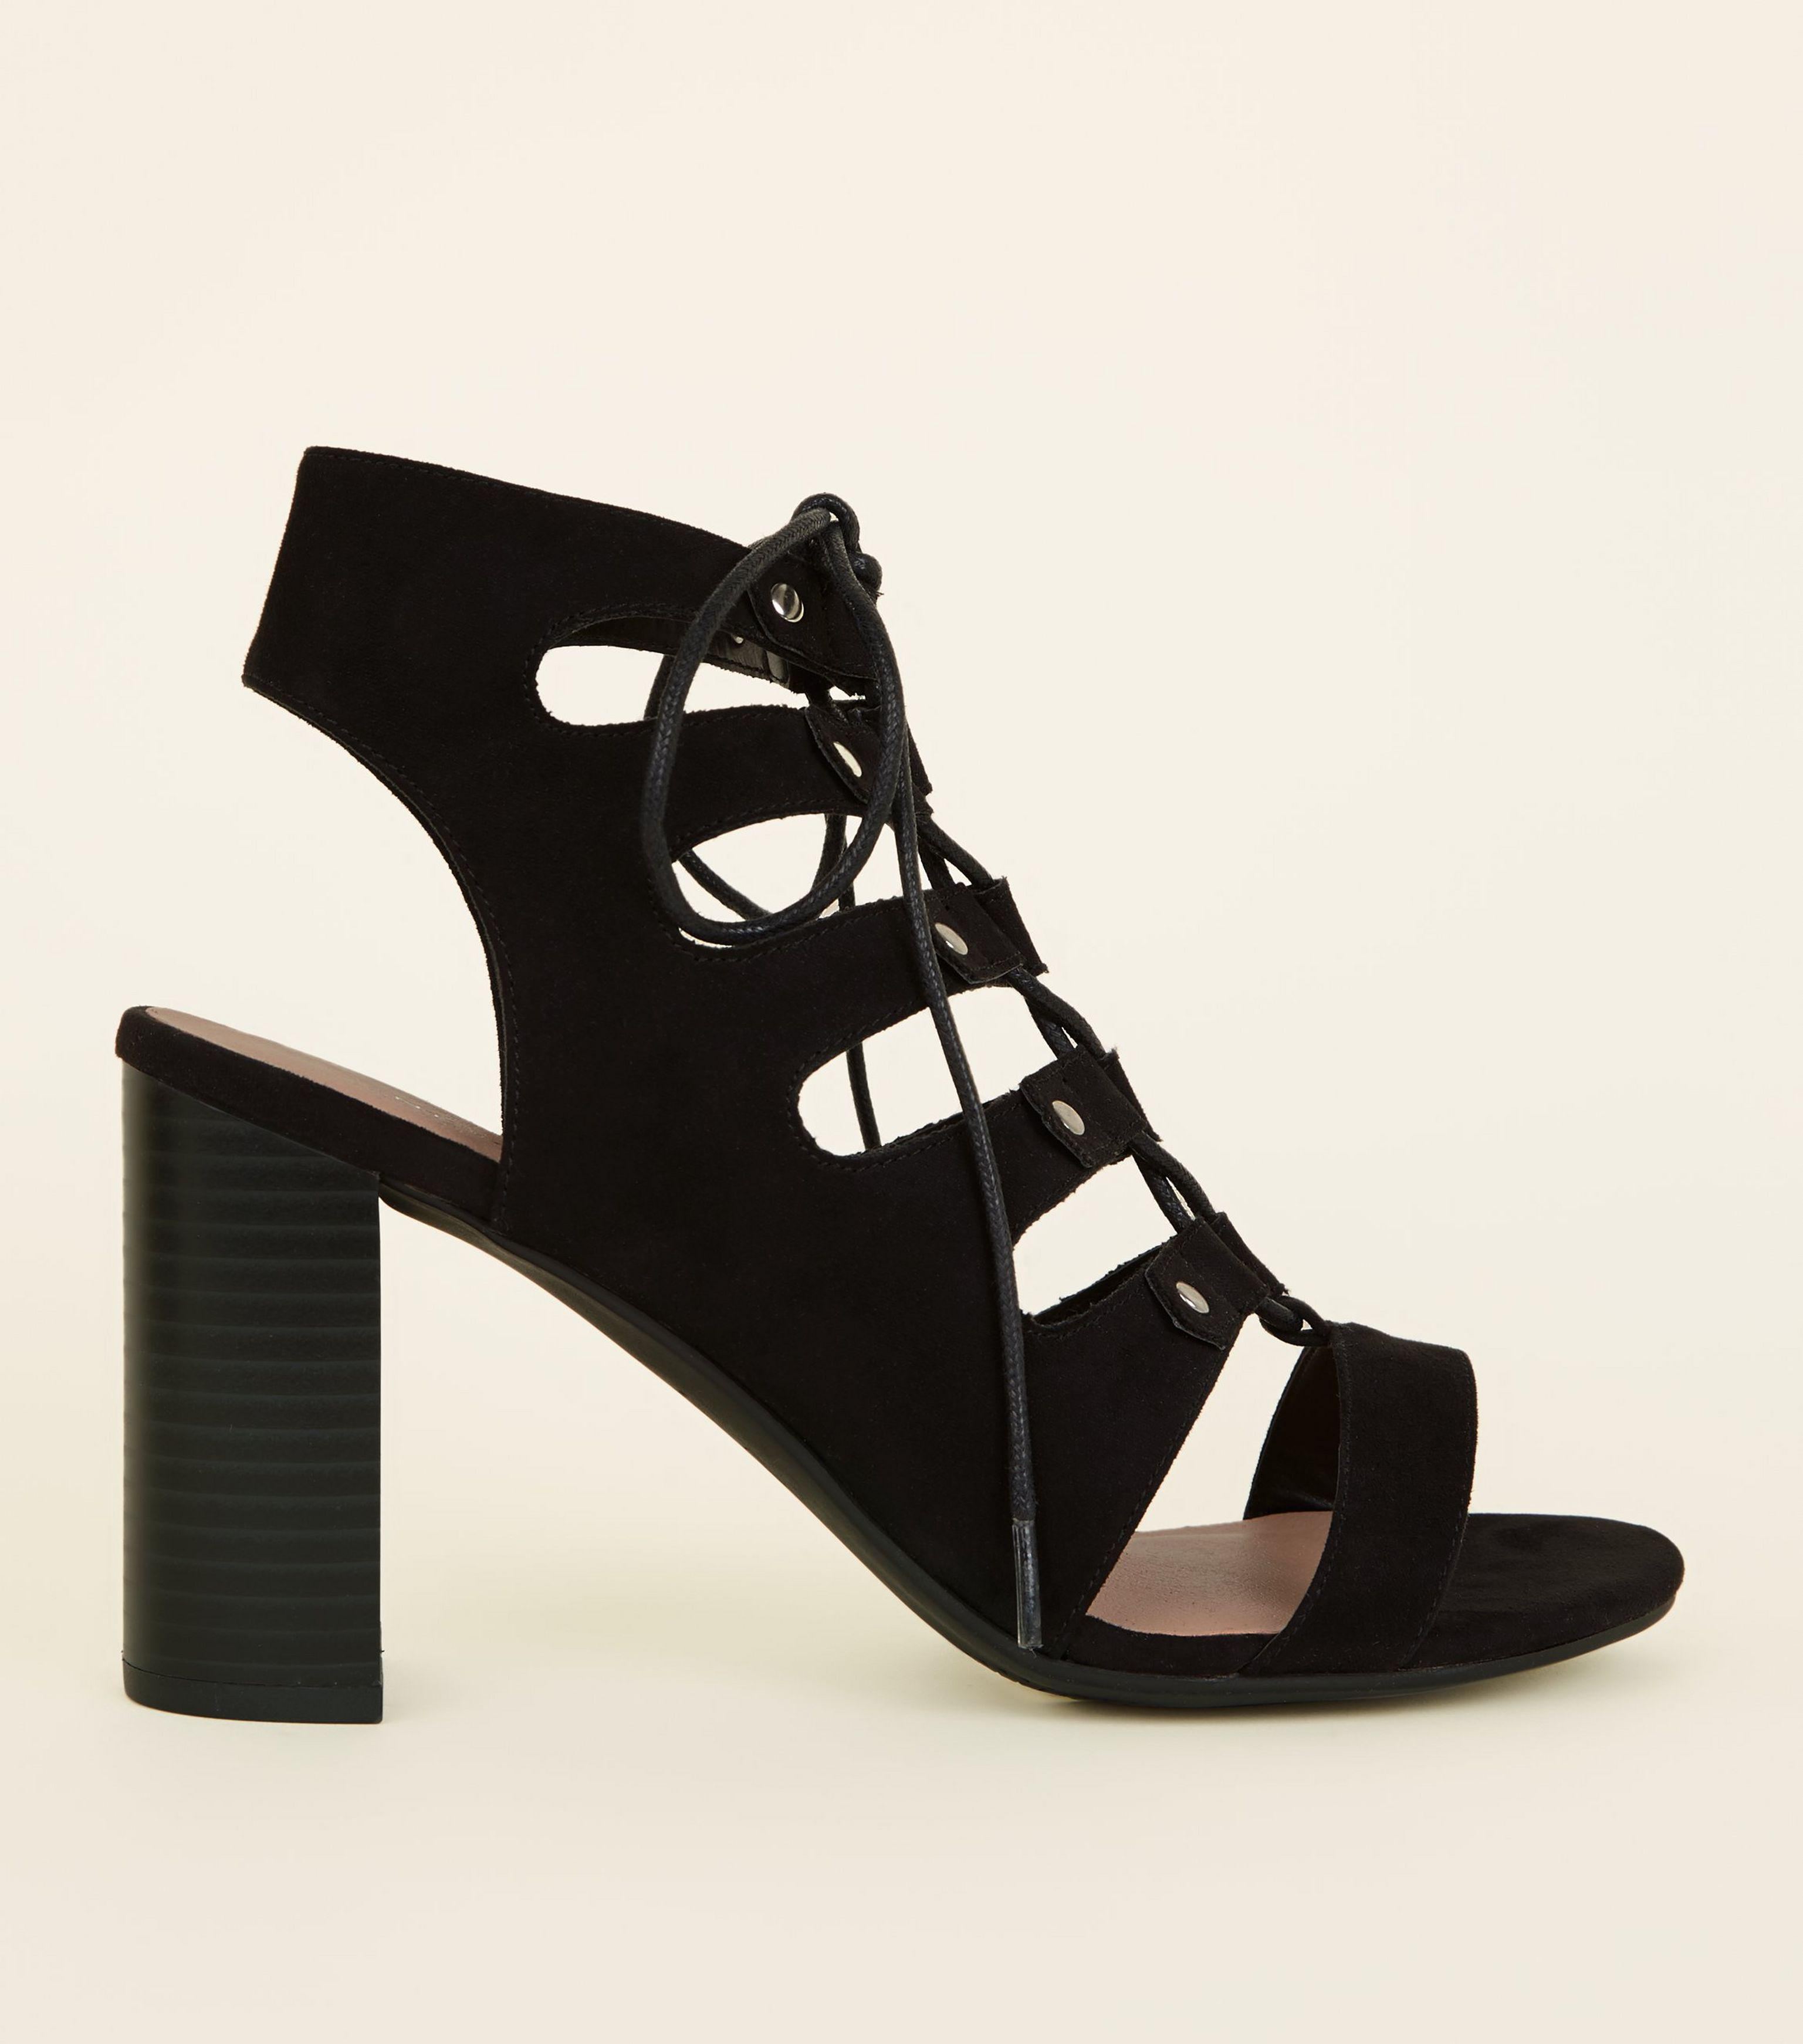 89a5486ad5dc New Look Wide Fit Black Suedette Block Heel Ghillie Sandals in Black ...